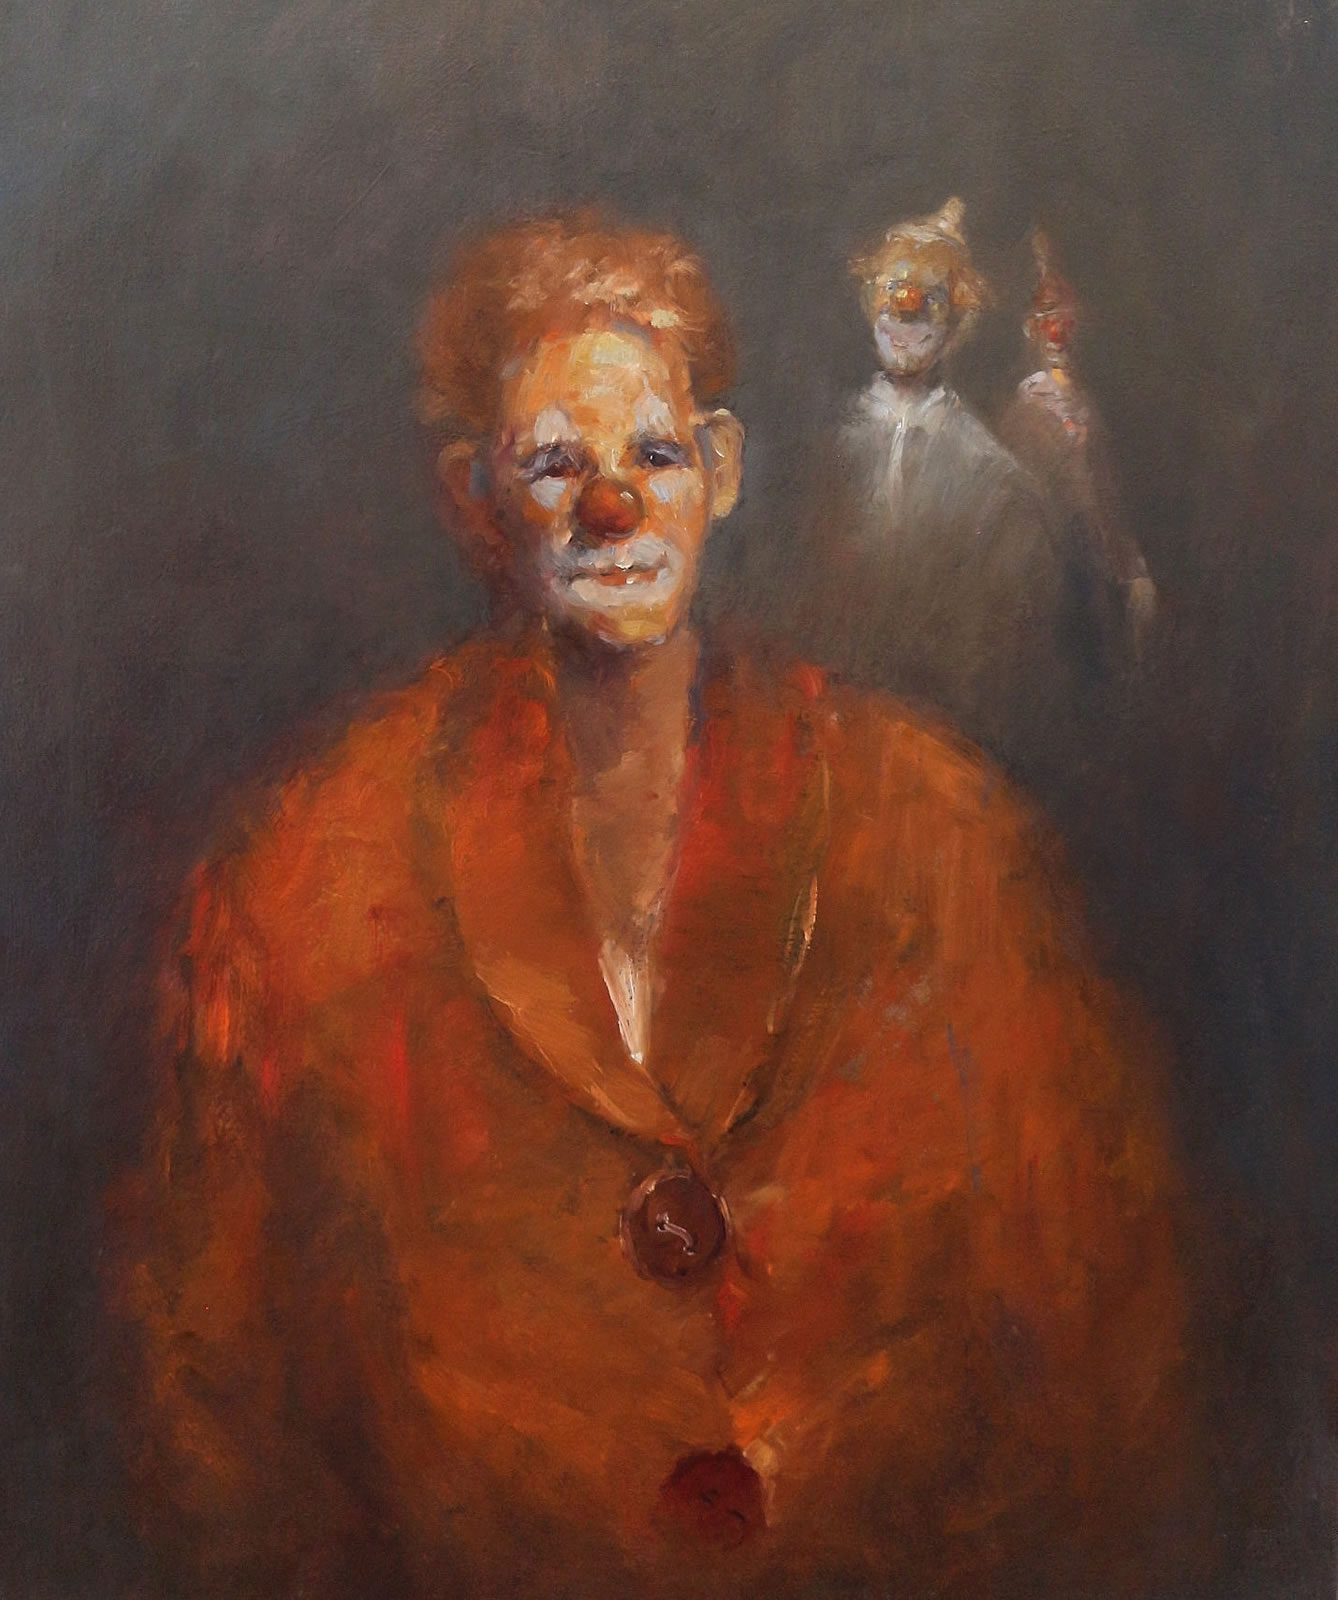 Oil painting of melancholy clown by Stewart Taylor